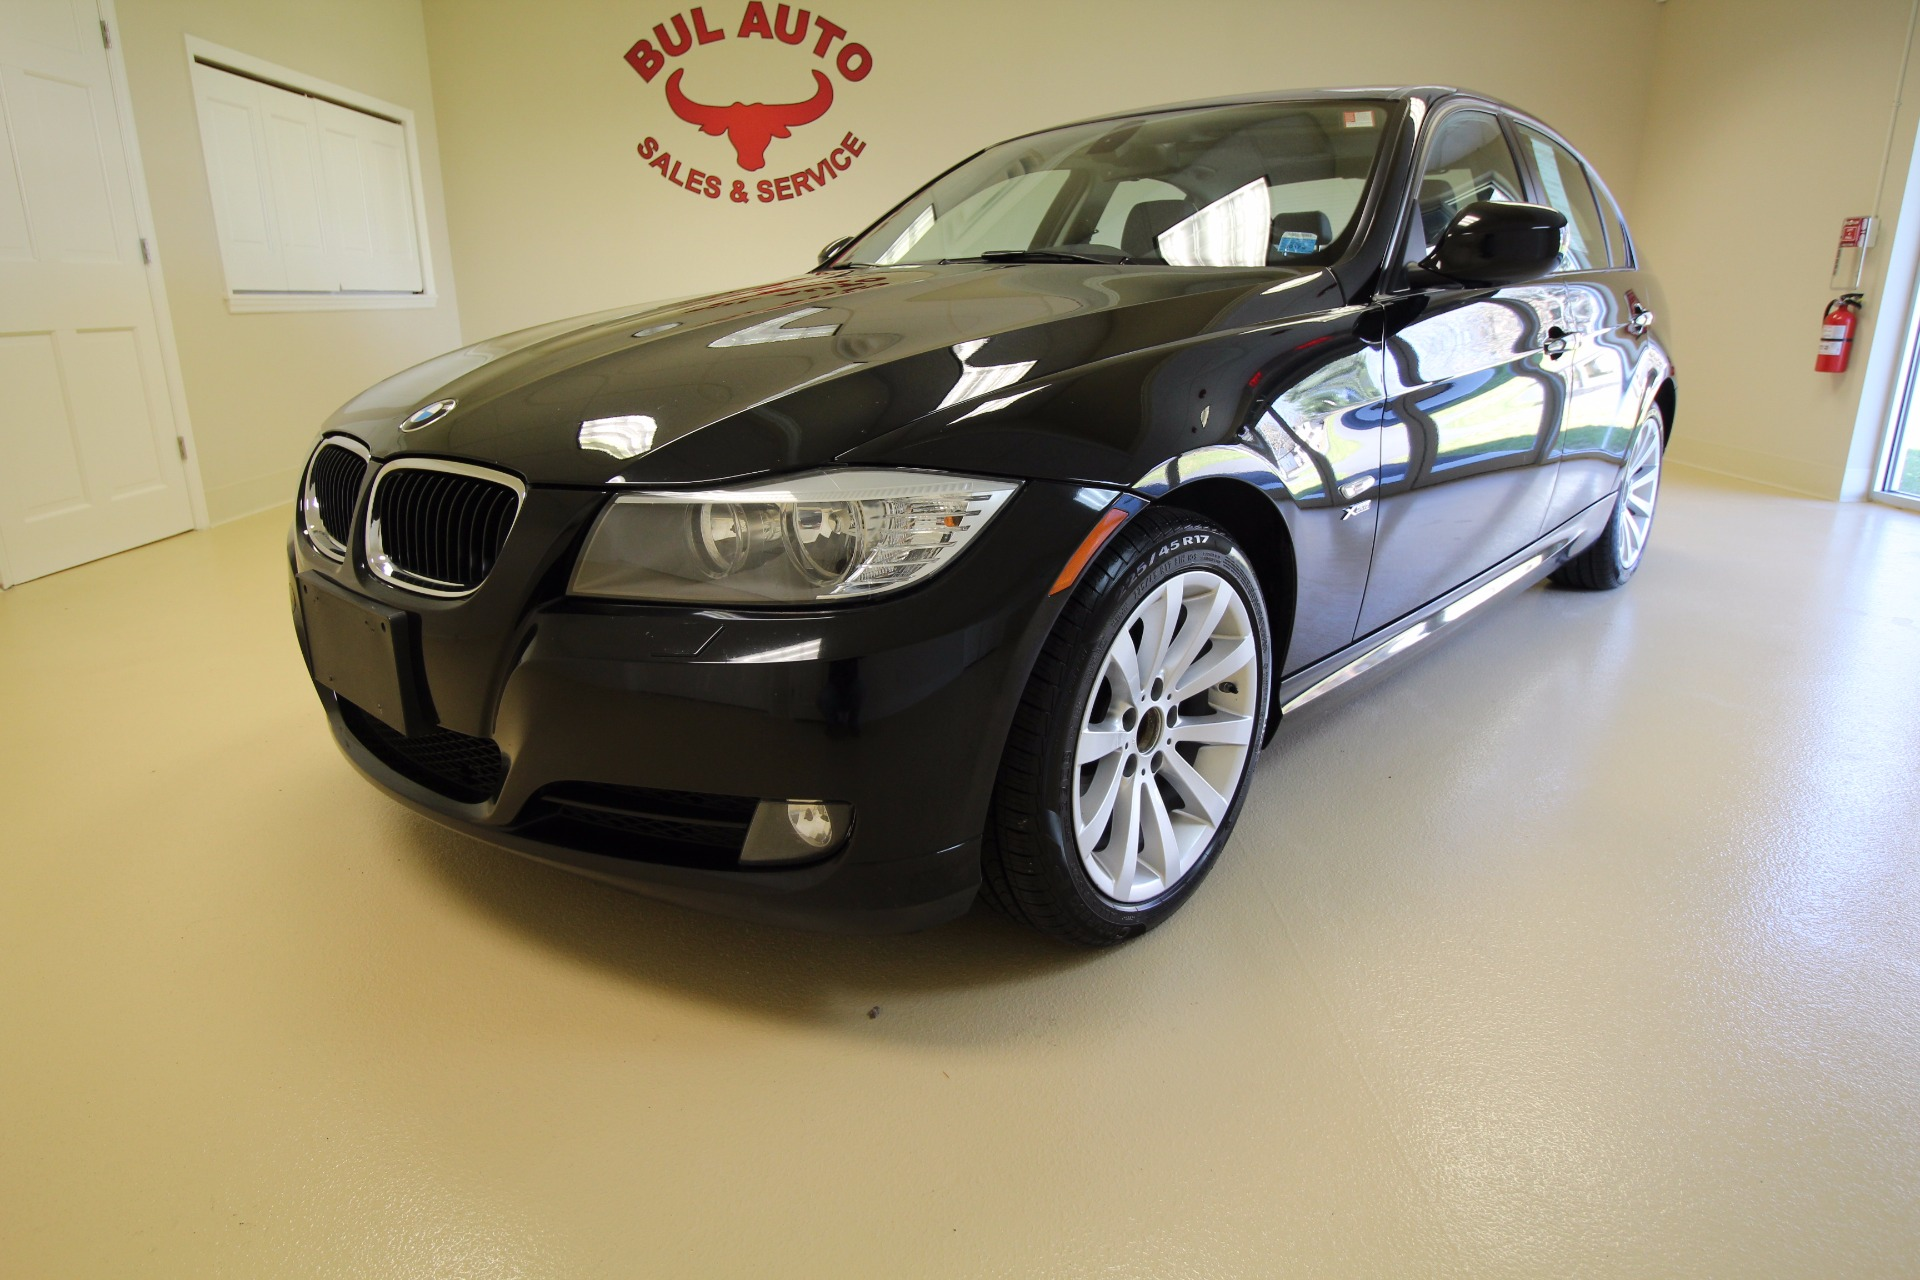 2011 bmw 3 series 328i xdrive sa stock 16307 for sale. Black Bedroom Furniture Sets. Home Design Ideas